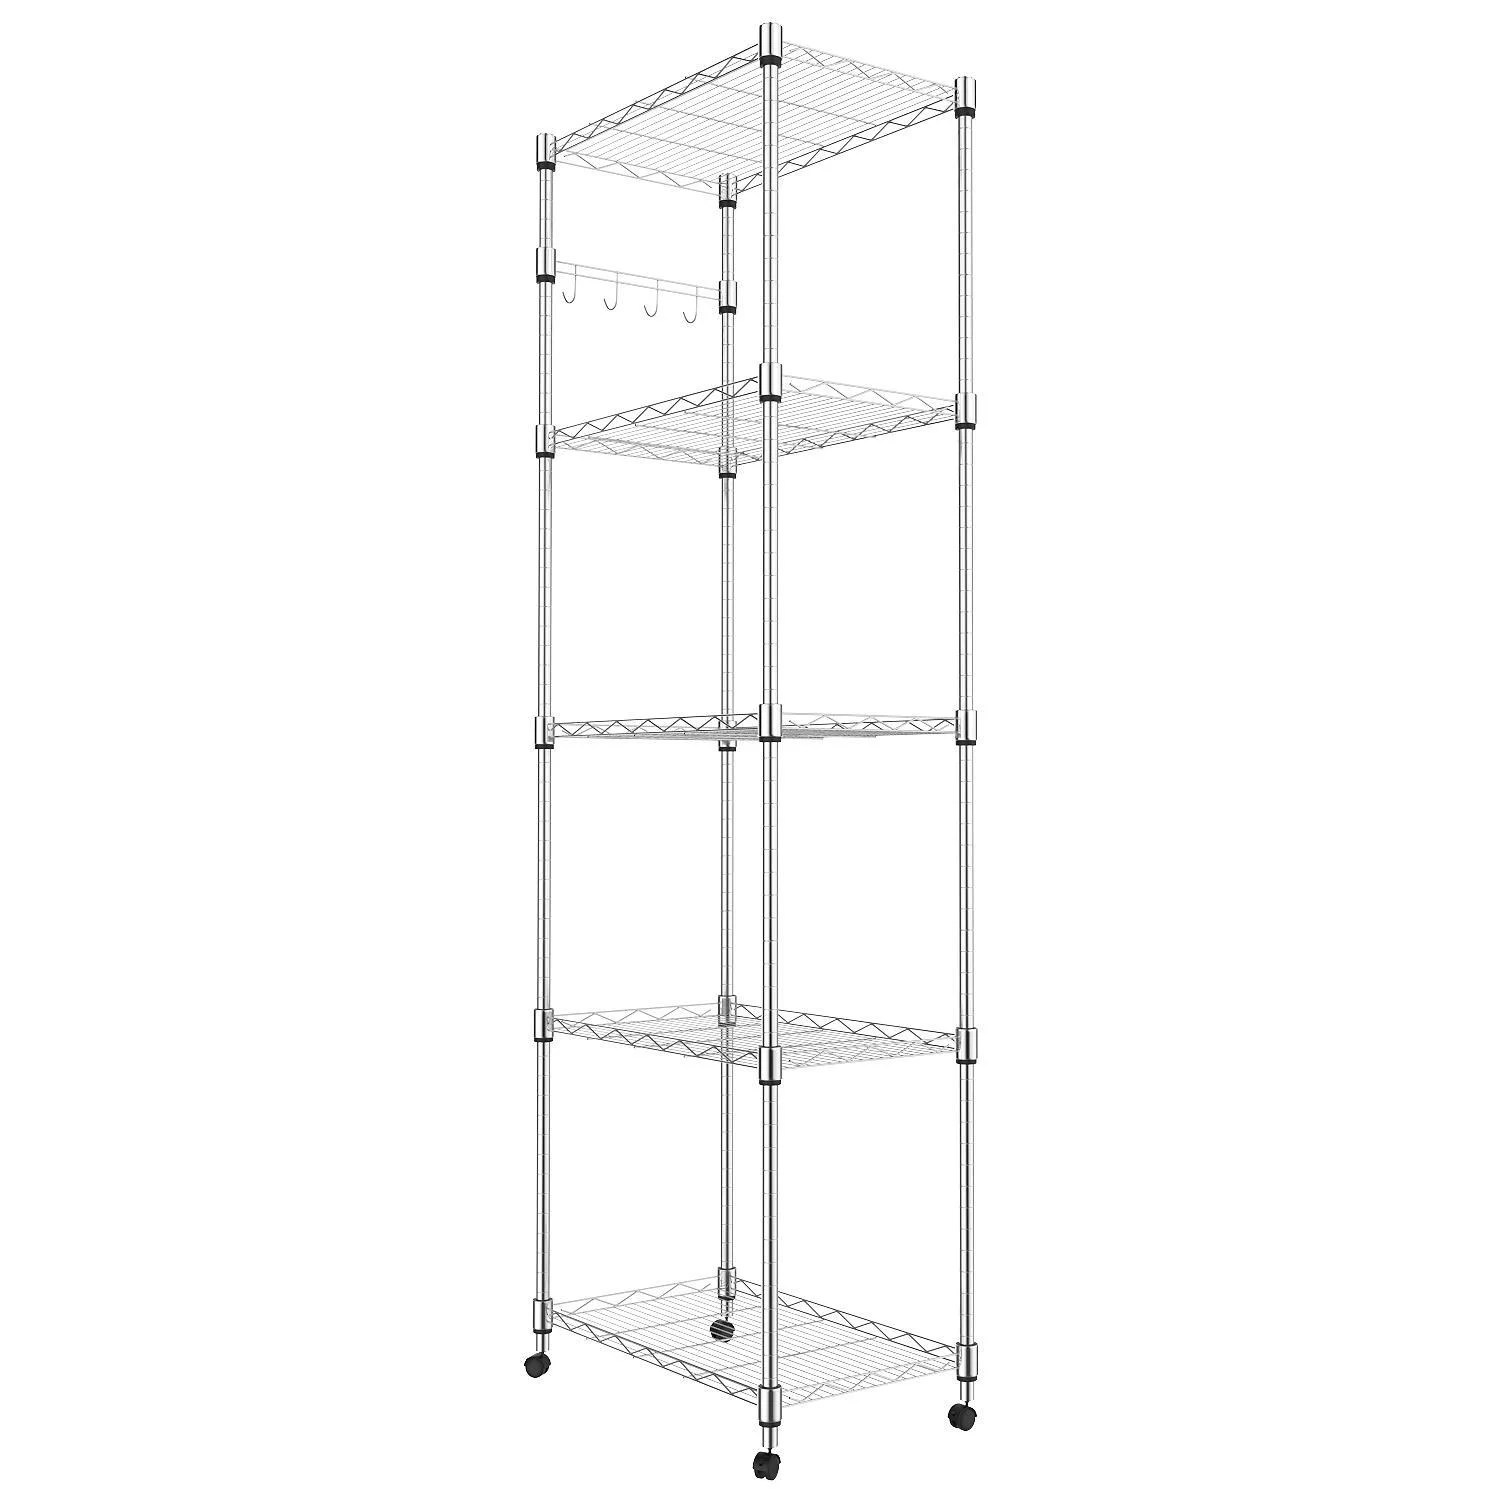 hot 5 tier steel wire shelving rack on wheels for storage in kitchen 72inch height 5 tier shelf free 2 day delivery